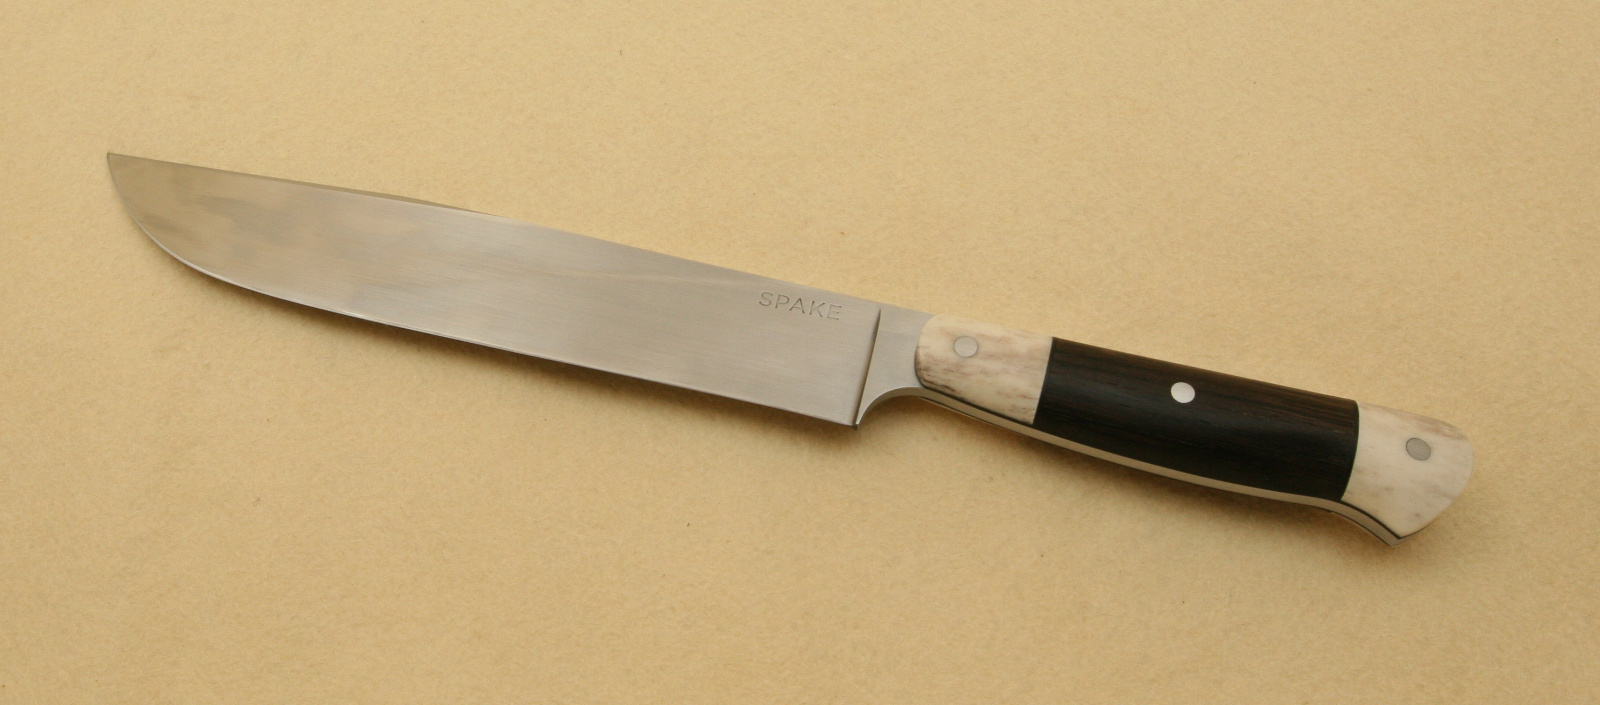 Jeremy Spake Trade Knife